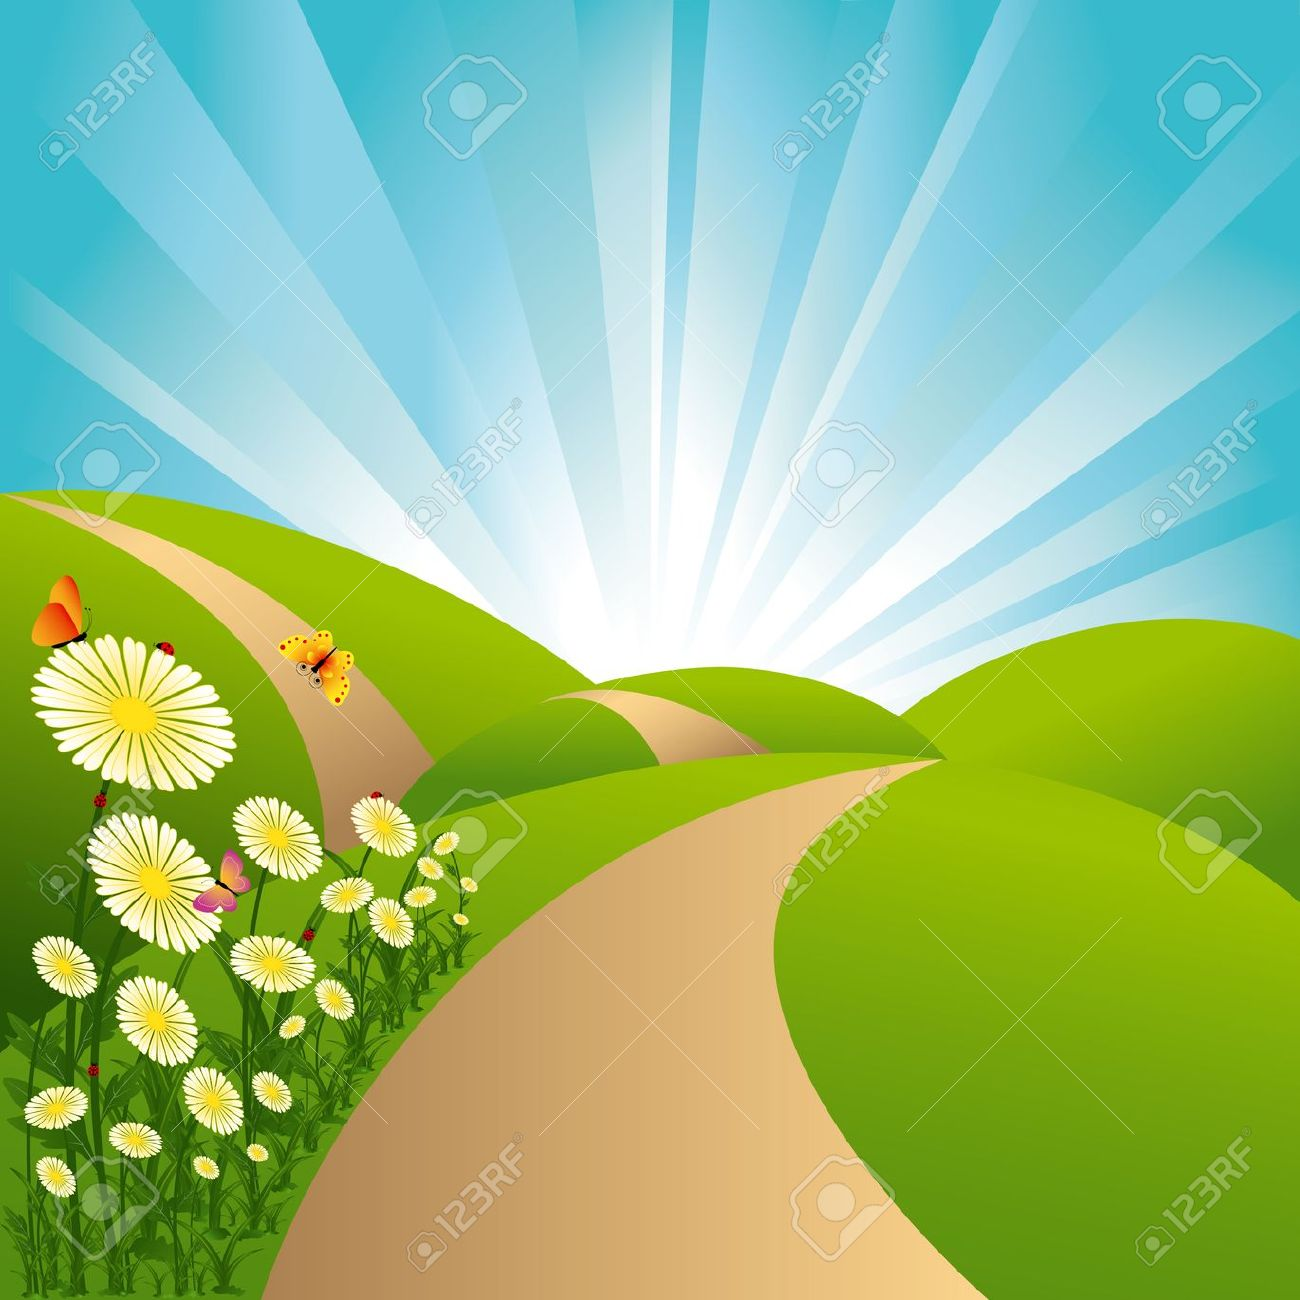 Pathway clipart countryside Clip Clip Art Art Pathway